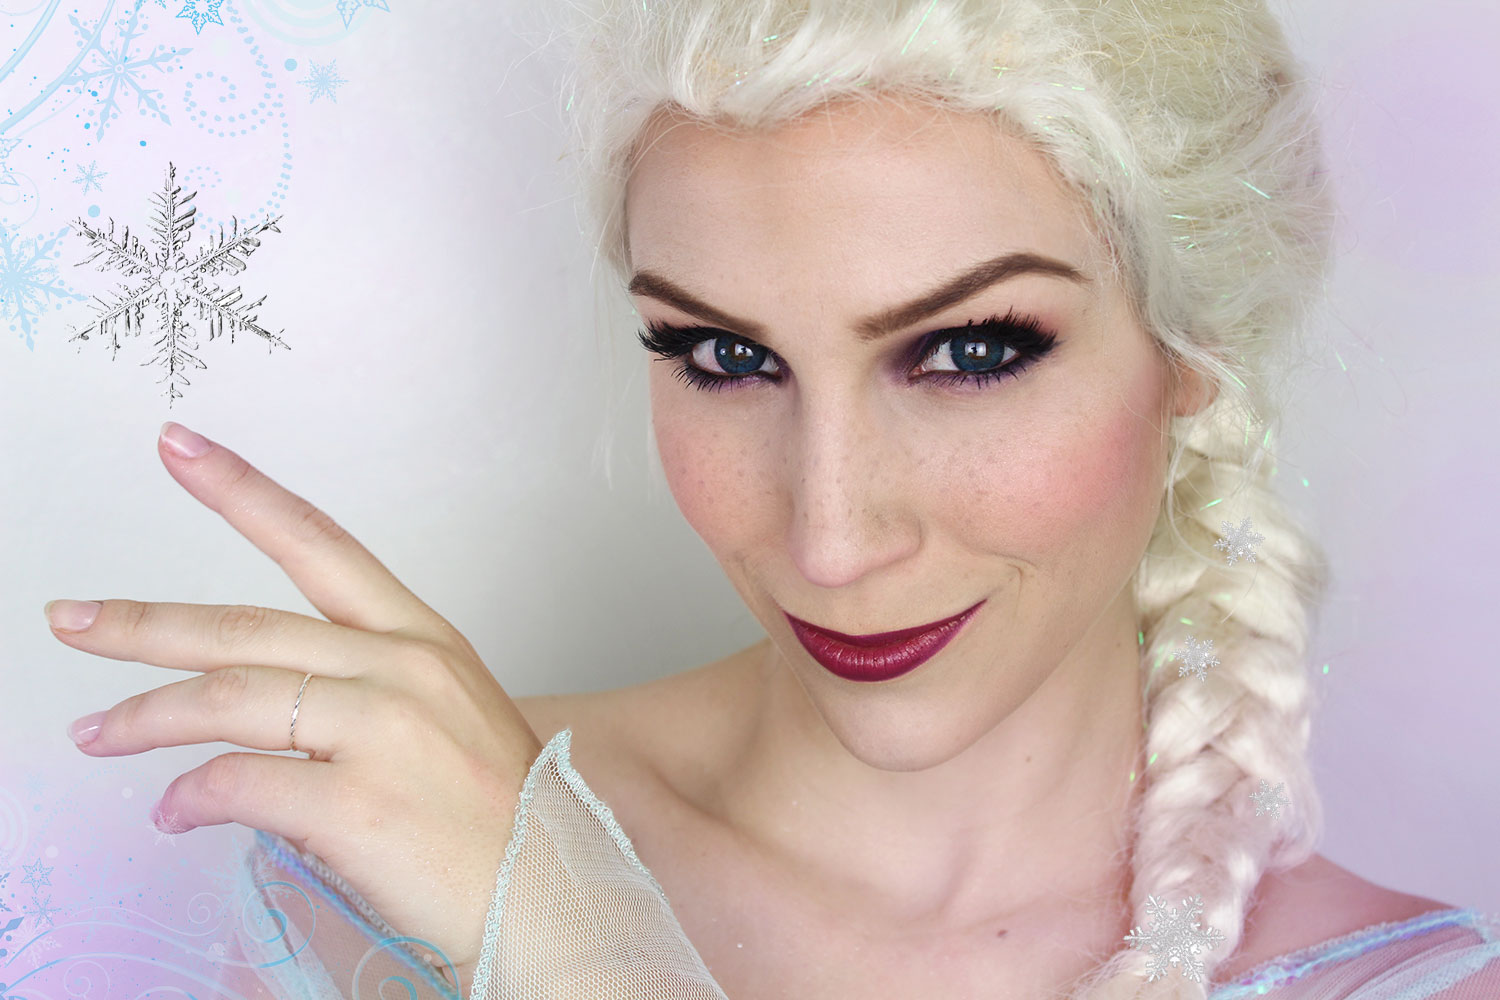 Maquillage d halloween elsa la reine des neiges - Raiponce reine des neiges ...